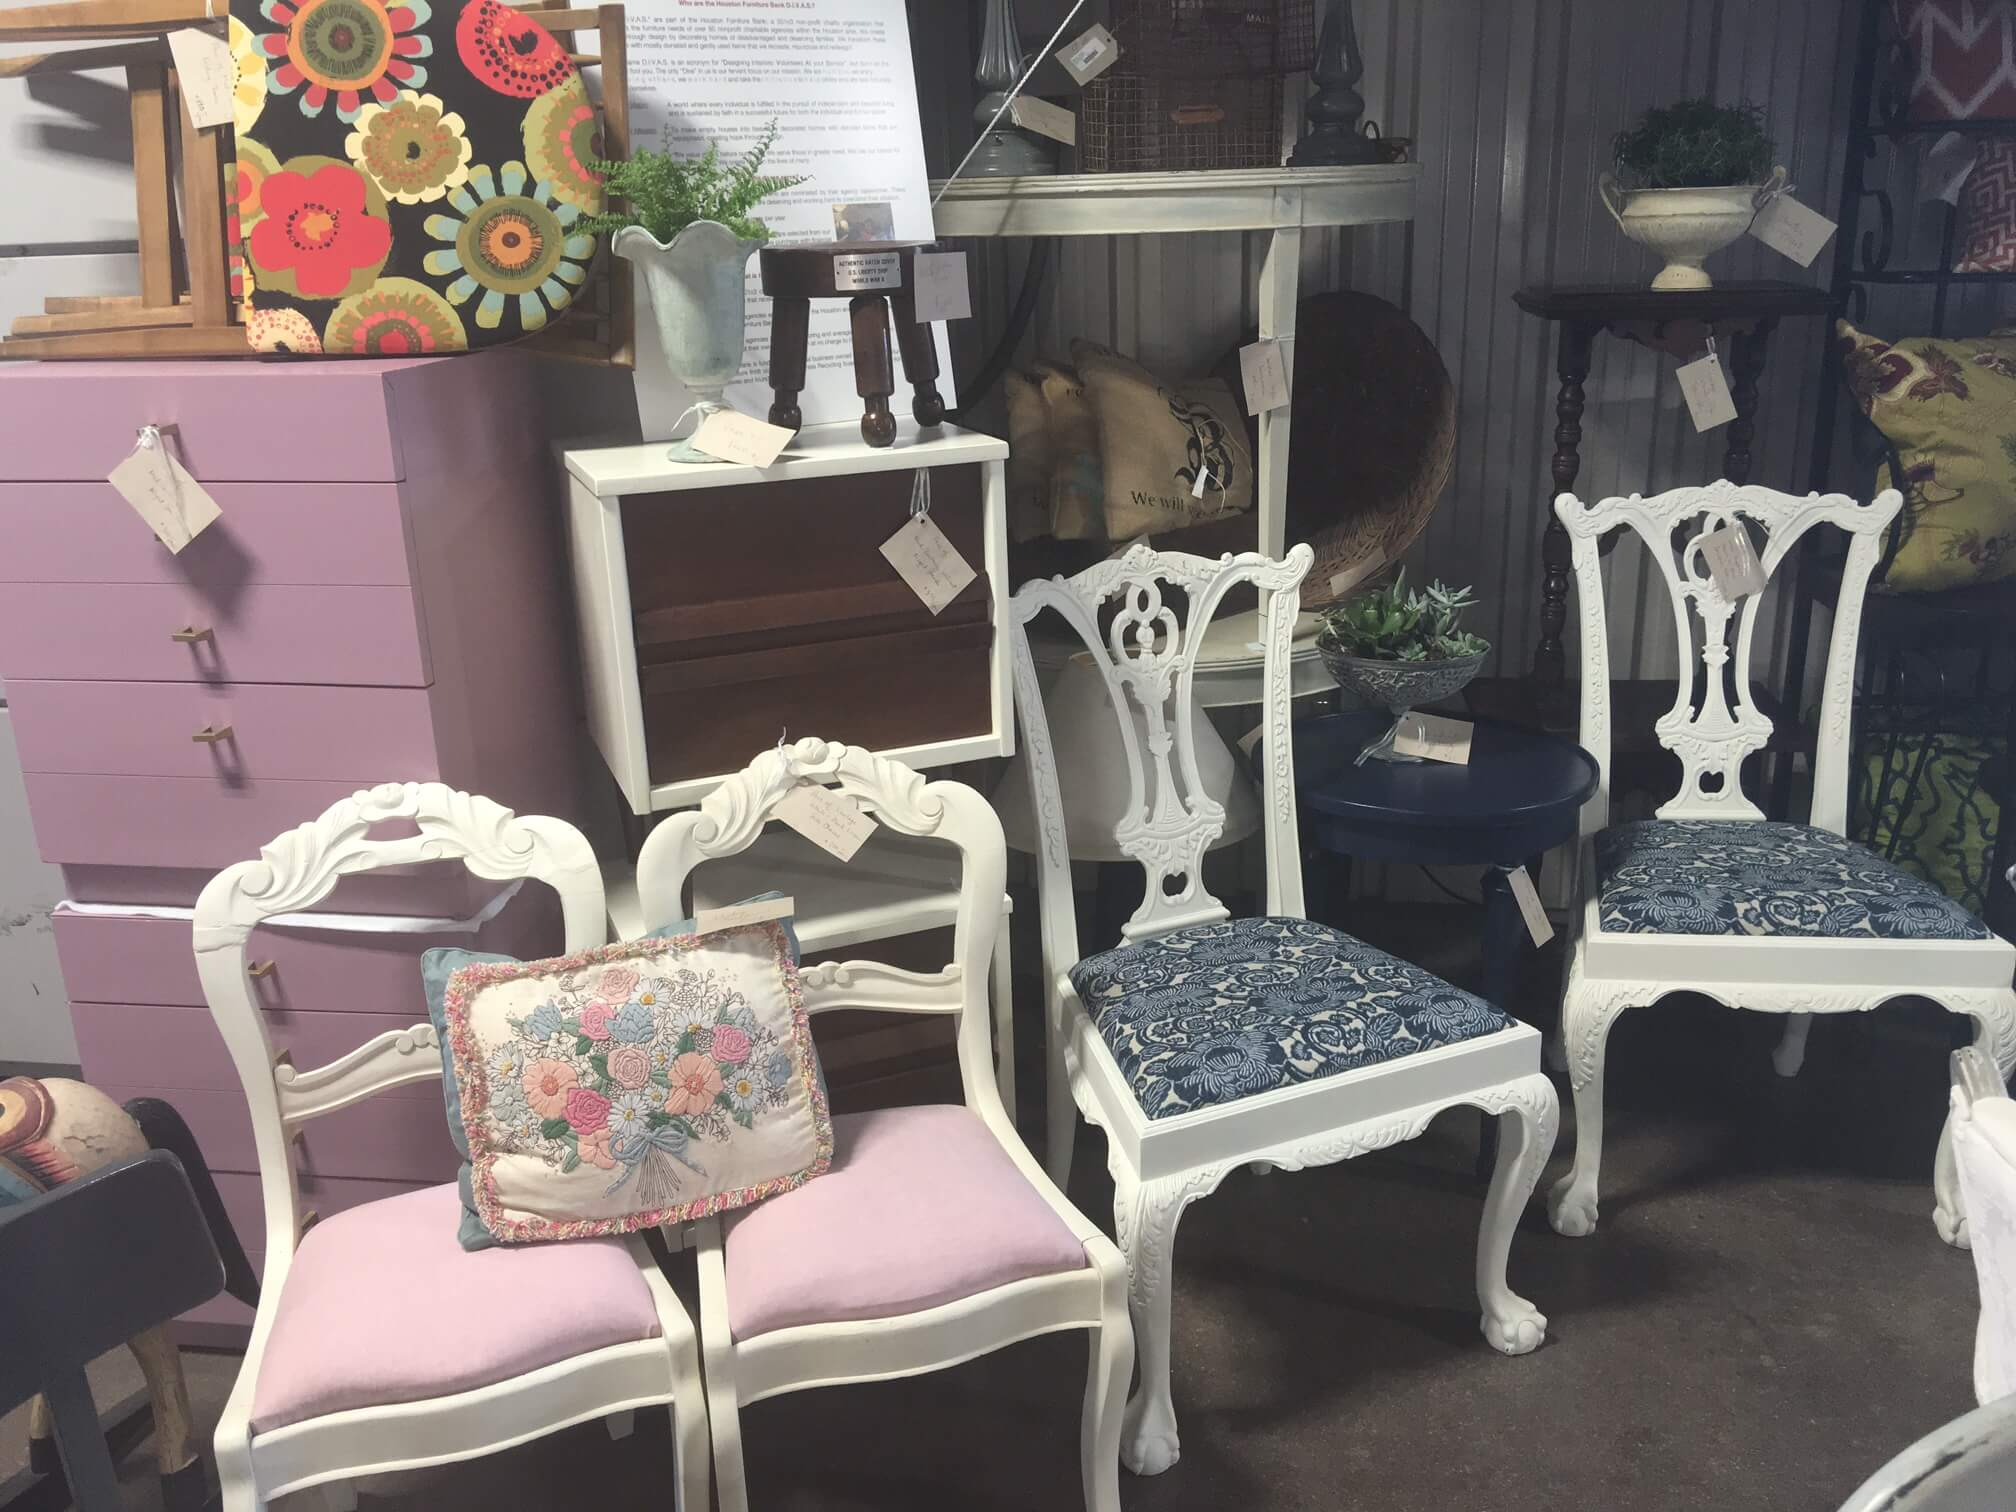 Furniture Donations For Houston Casa Vilora Interiors Teams Up With Houston Furniture Bank